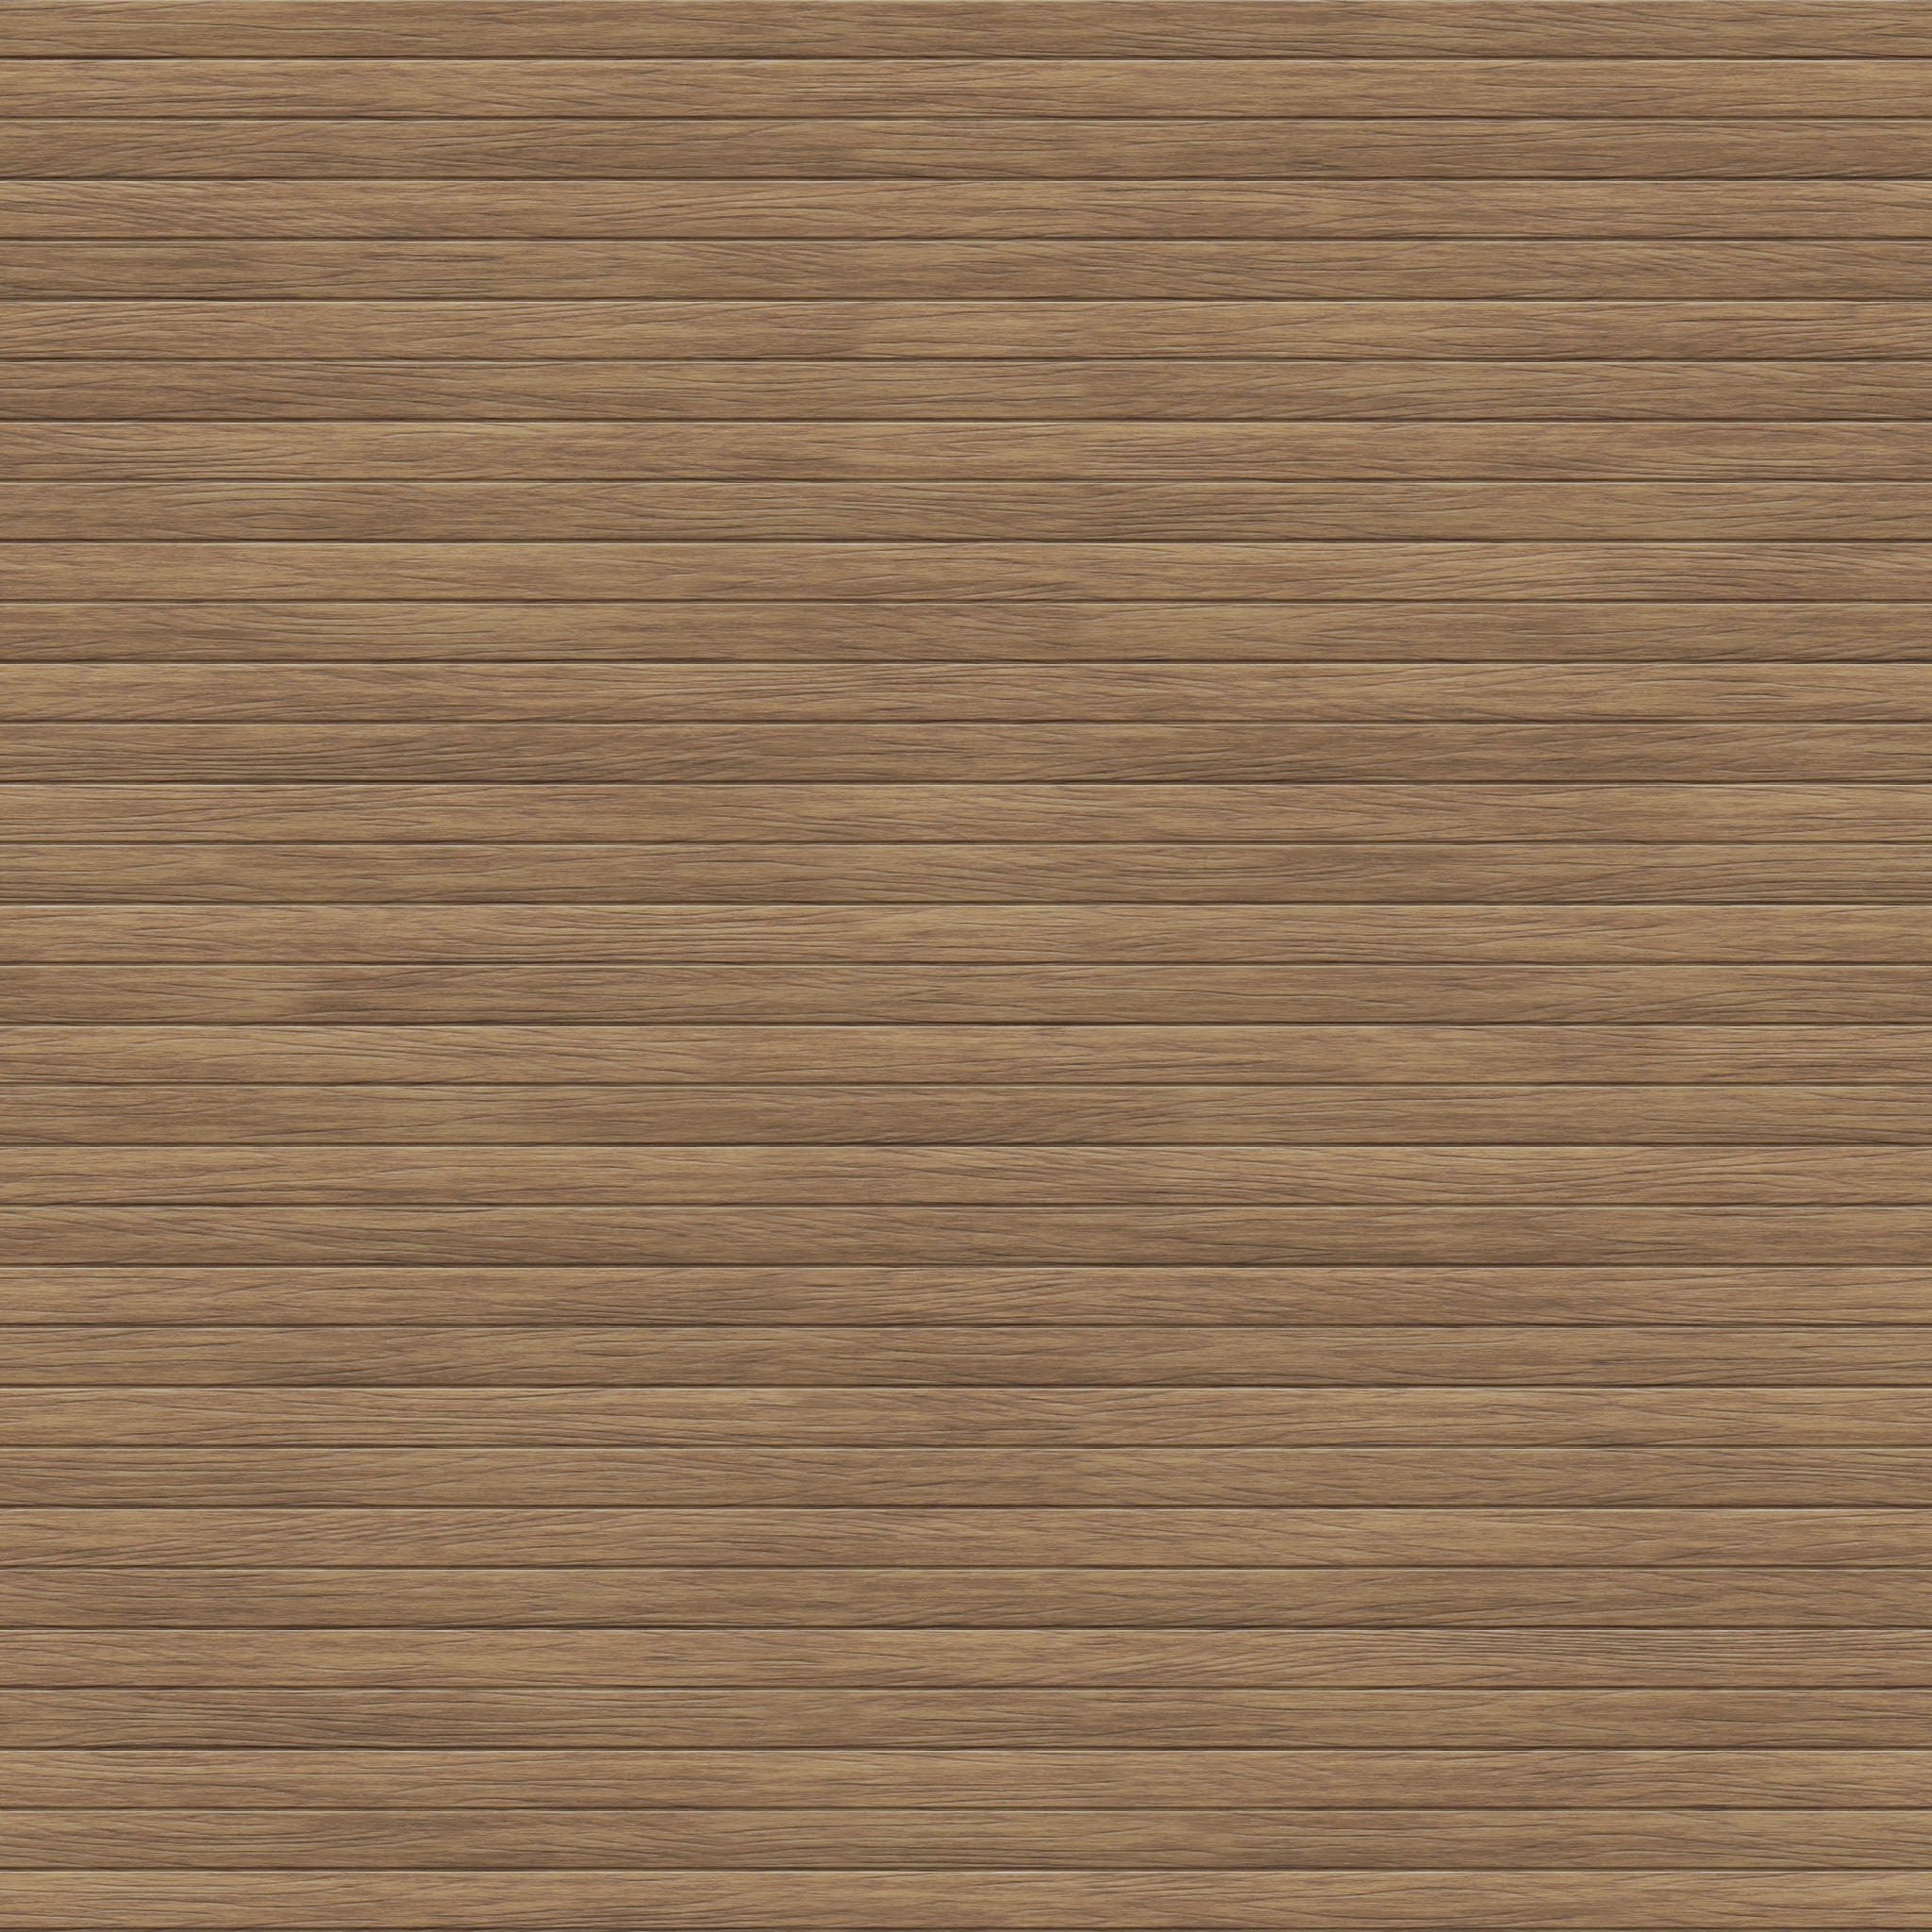 Wooden Planks Texture Tileable 2048x2048 By FabooGuy On DeviantArt